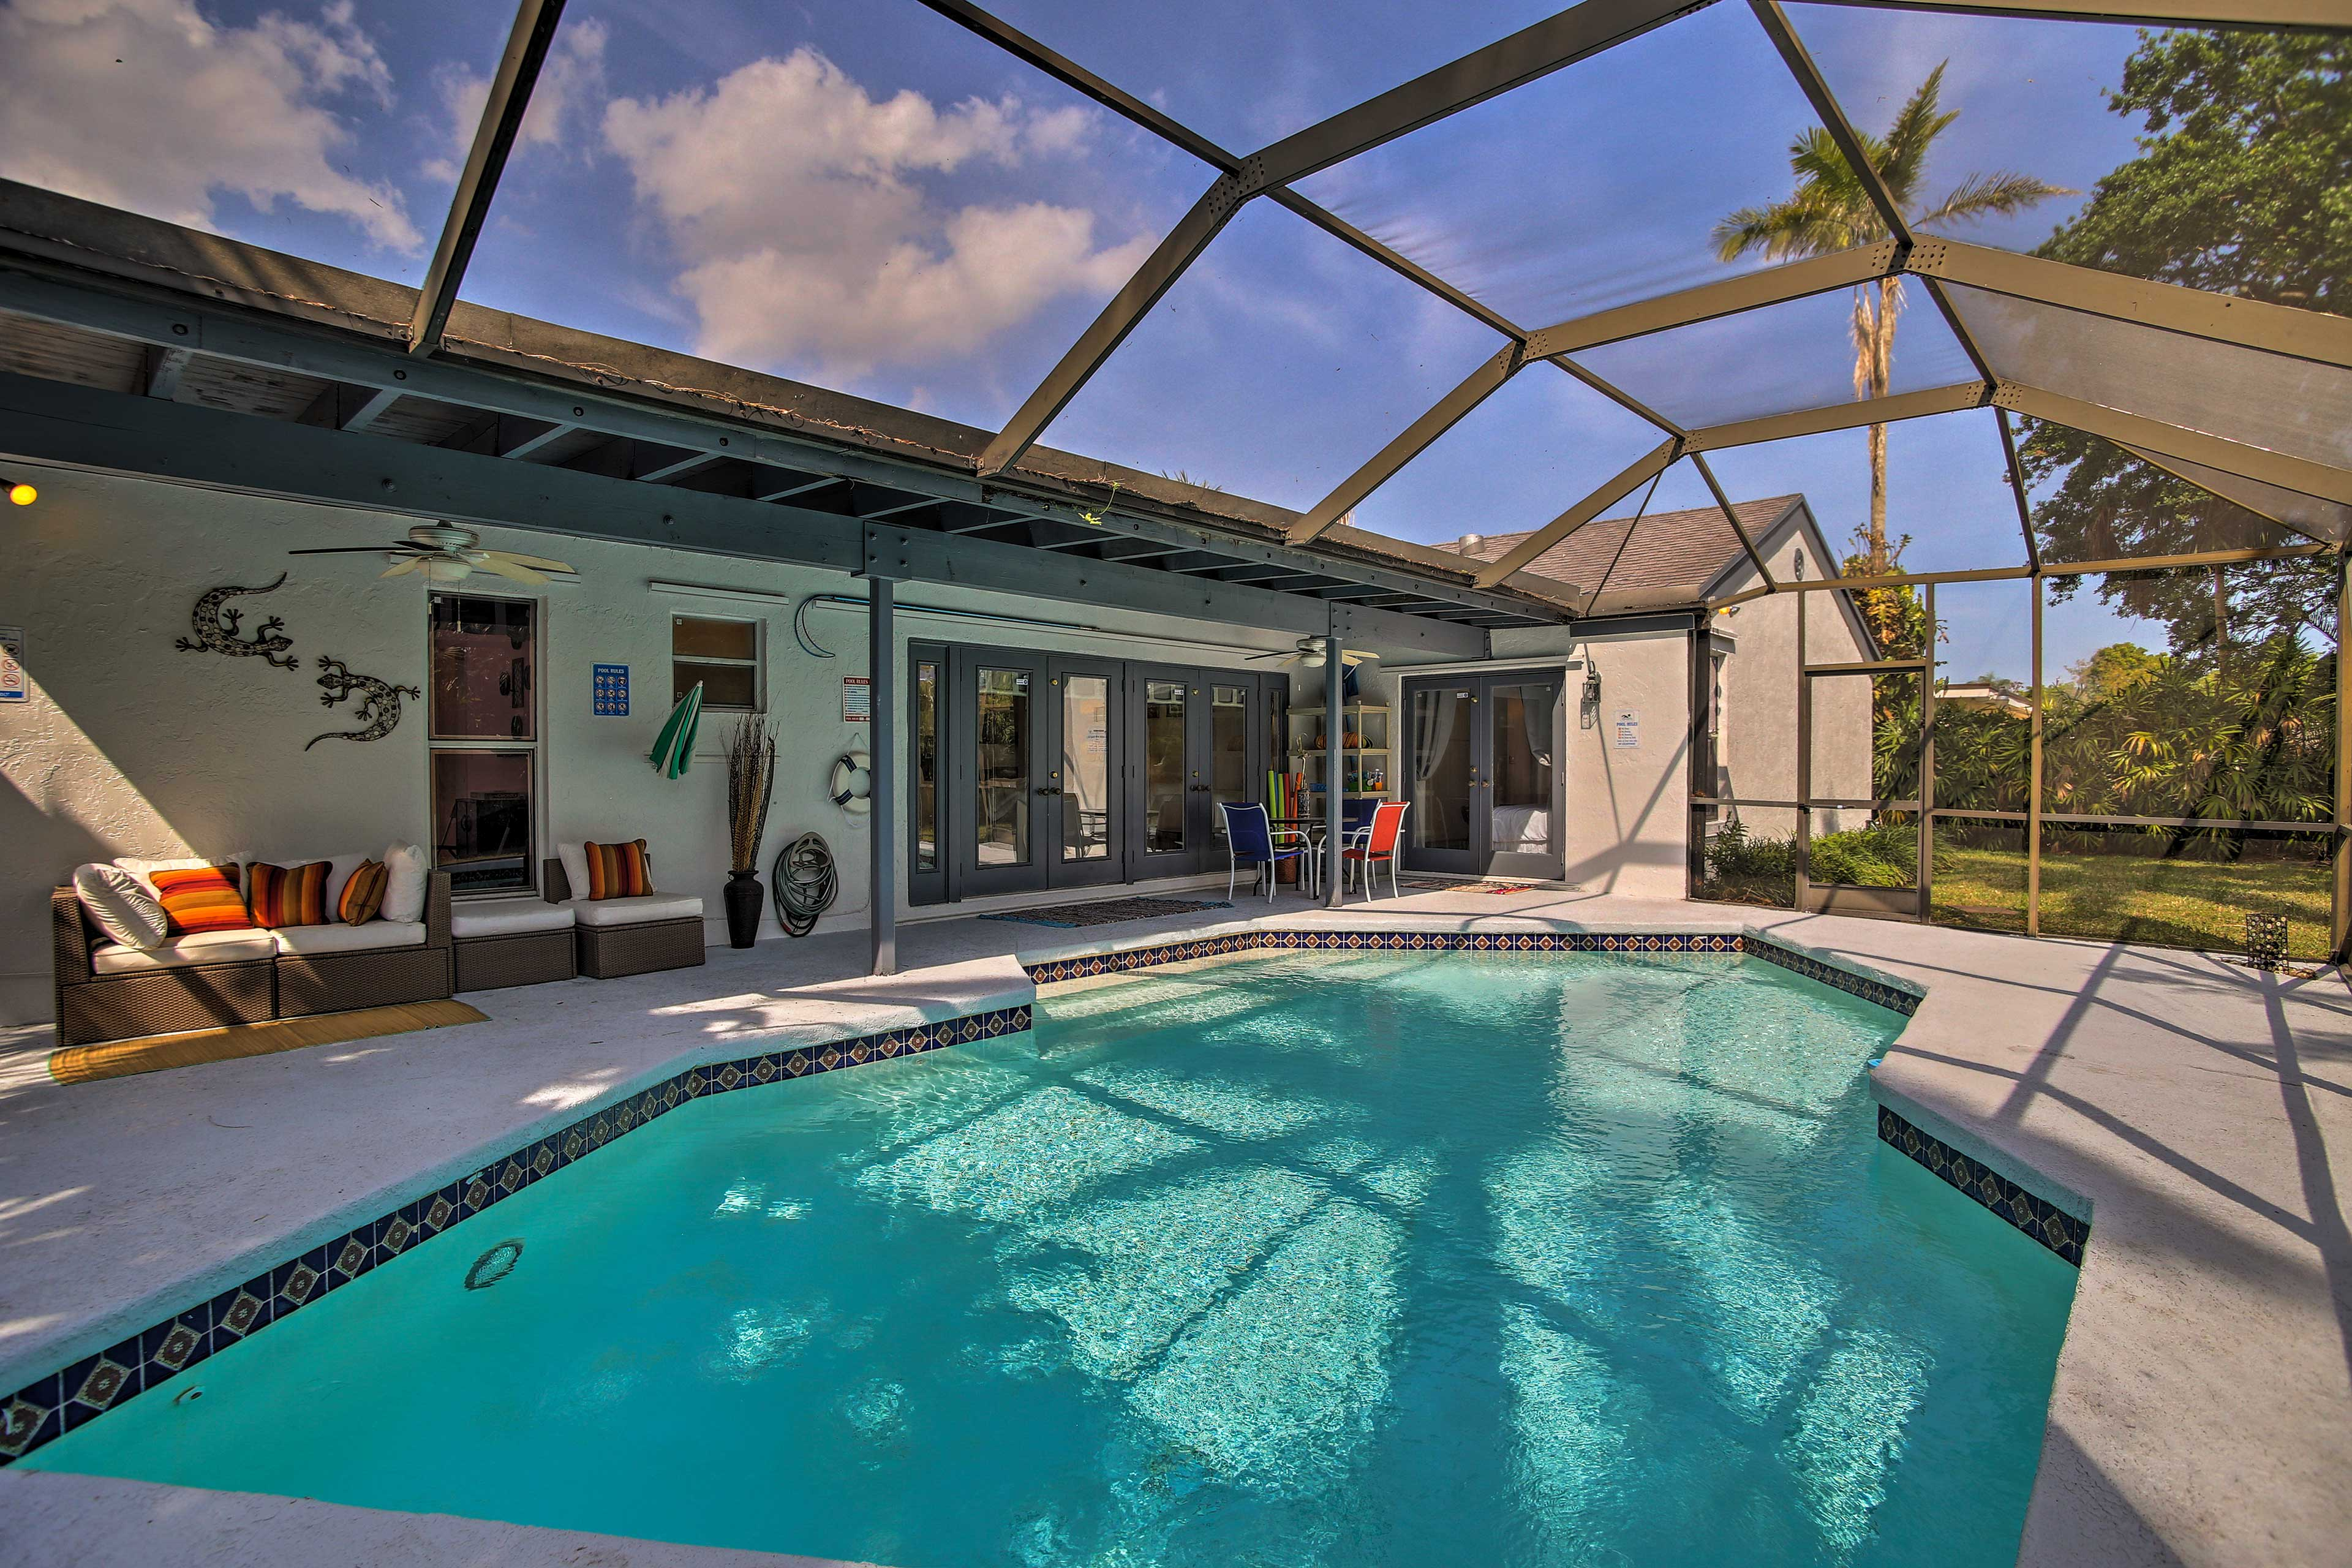 Your private pool will make you feel like royalty.